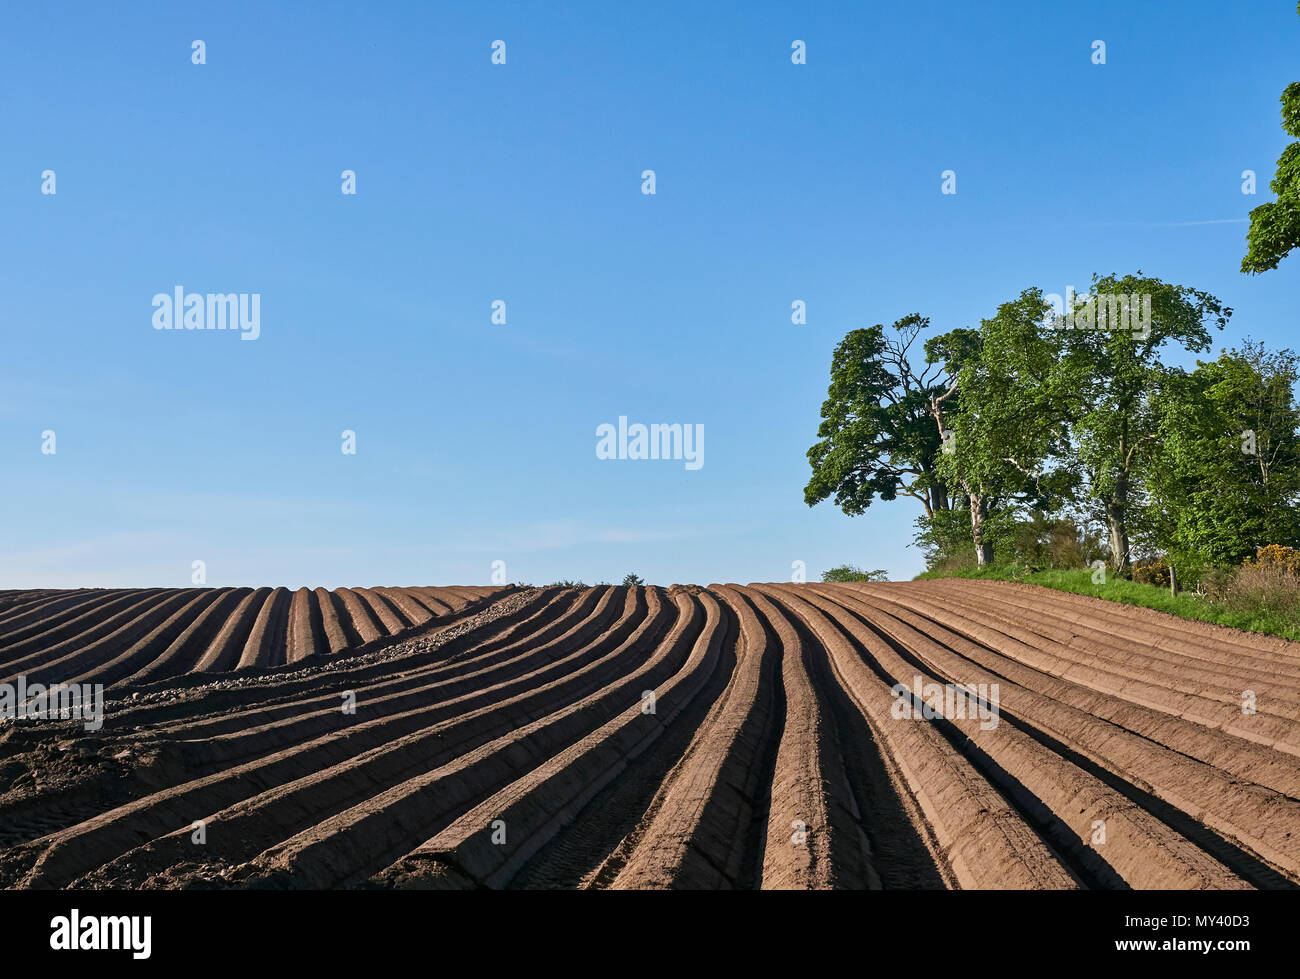 Ploughed Potato Furrows in a Scottish Field near the small Village of Whigstreet in Angus, Scotland. - Stock Image